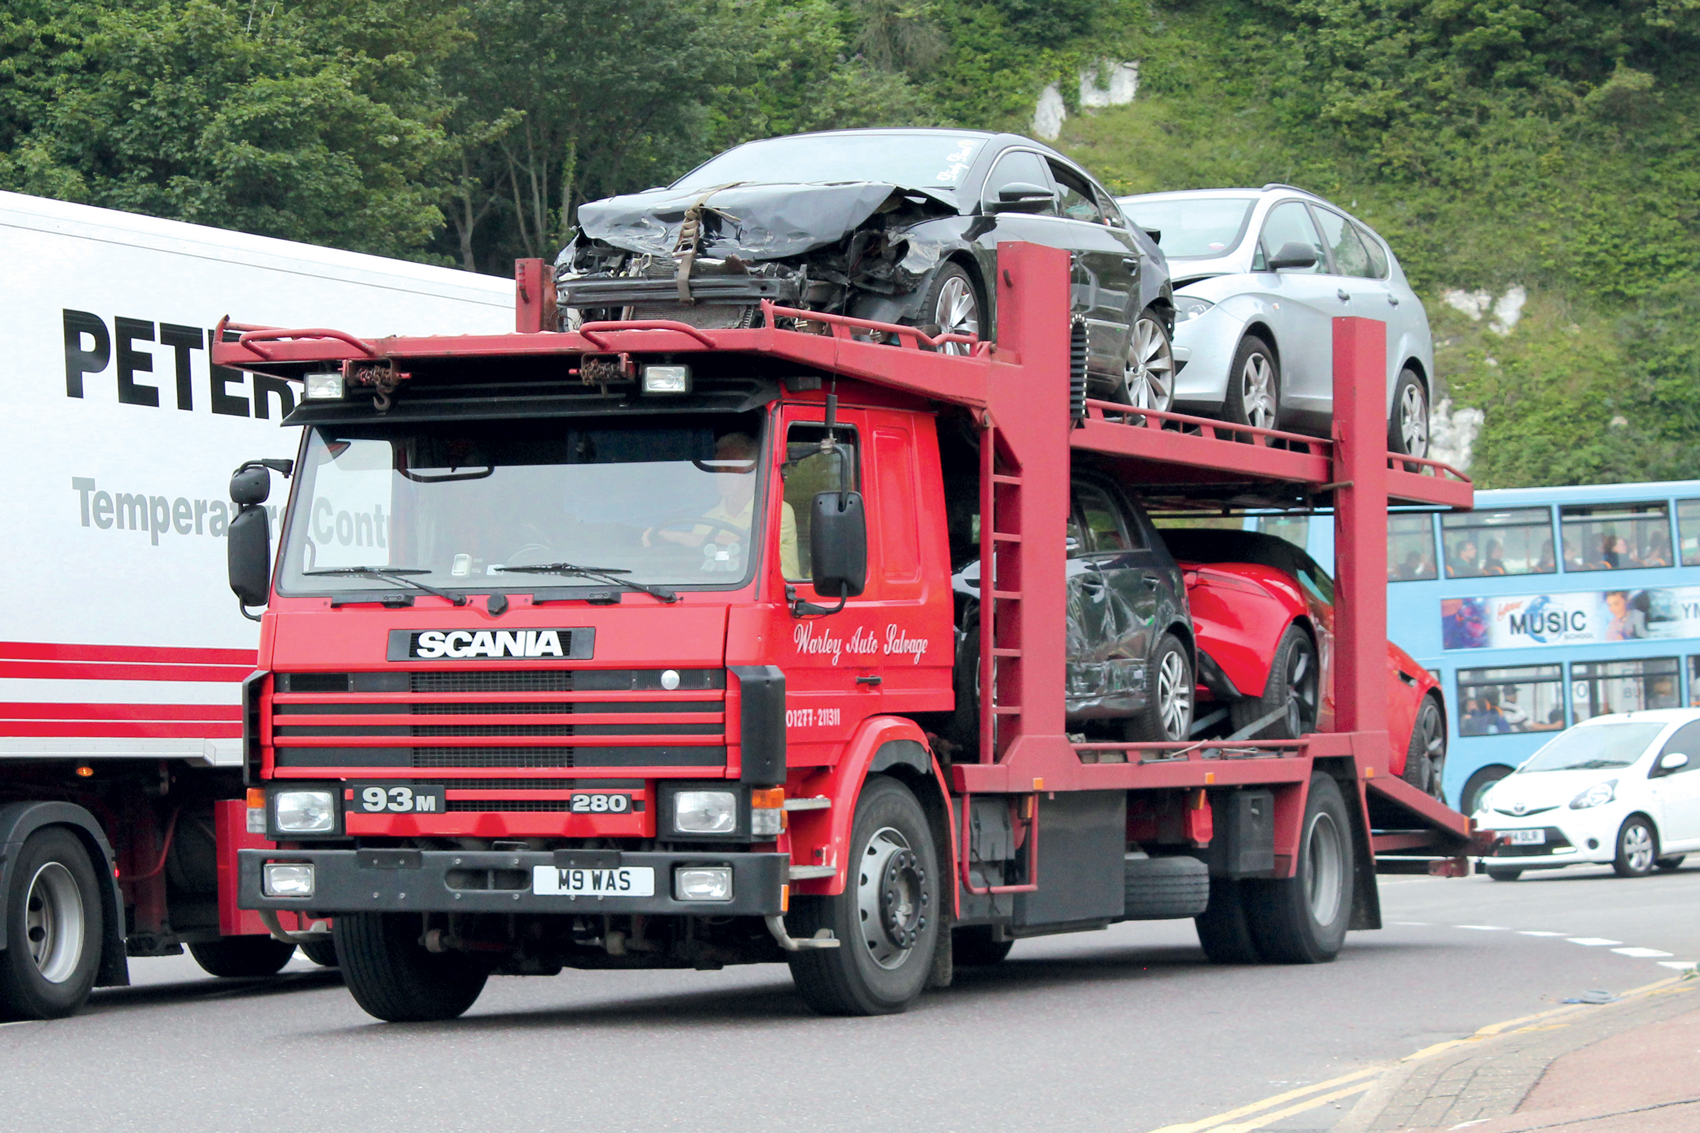 Discount Auto Salvage >> Snapshot Warley Auto Salvage Of Essex S Scania 93m By John